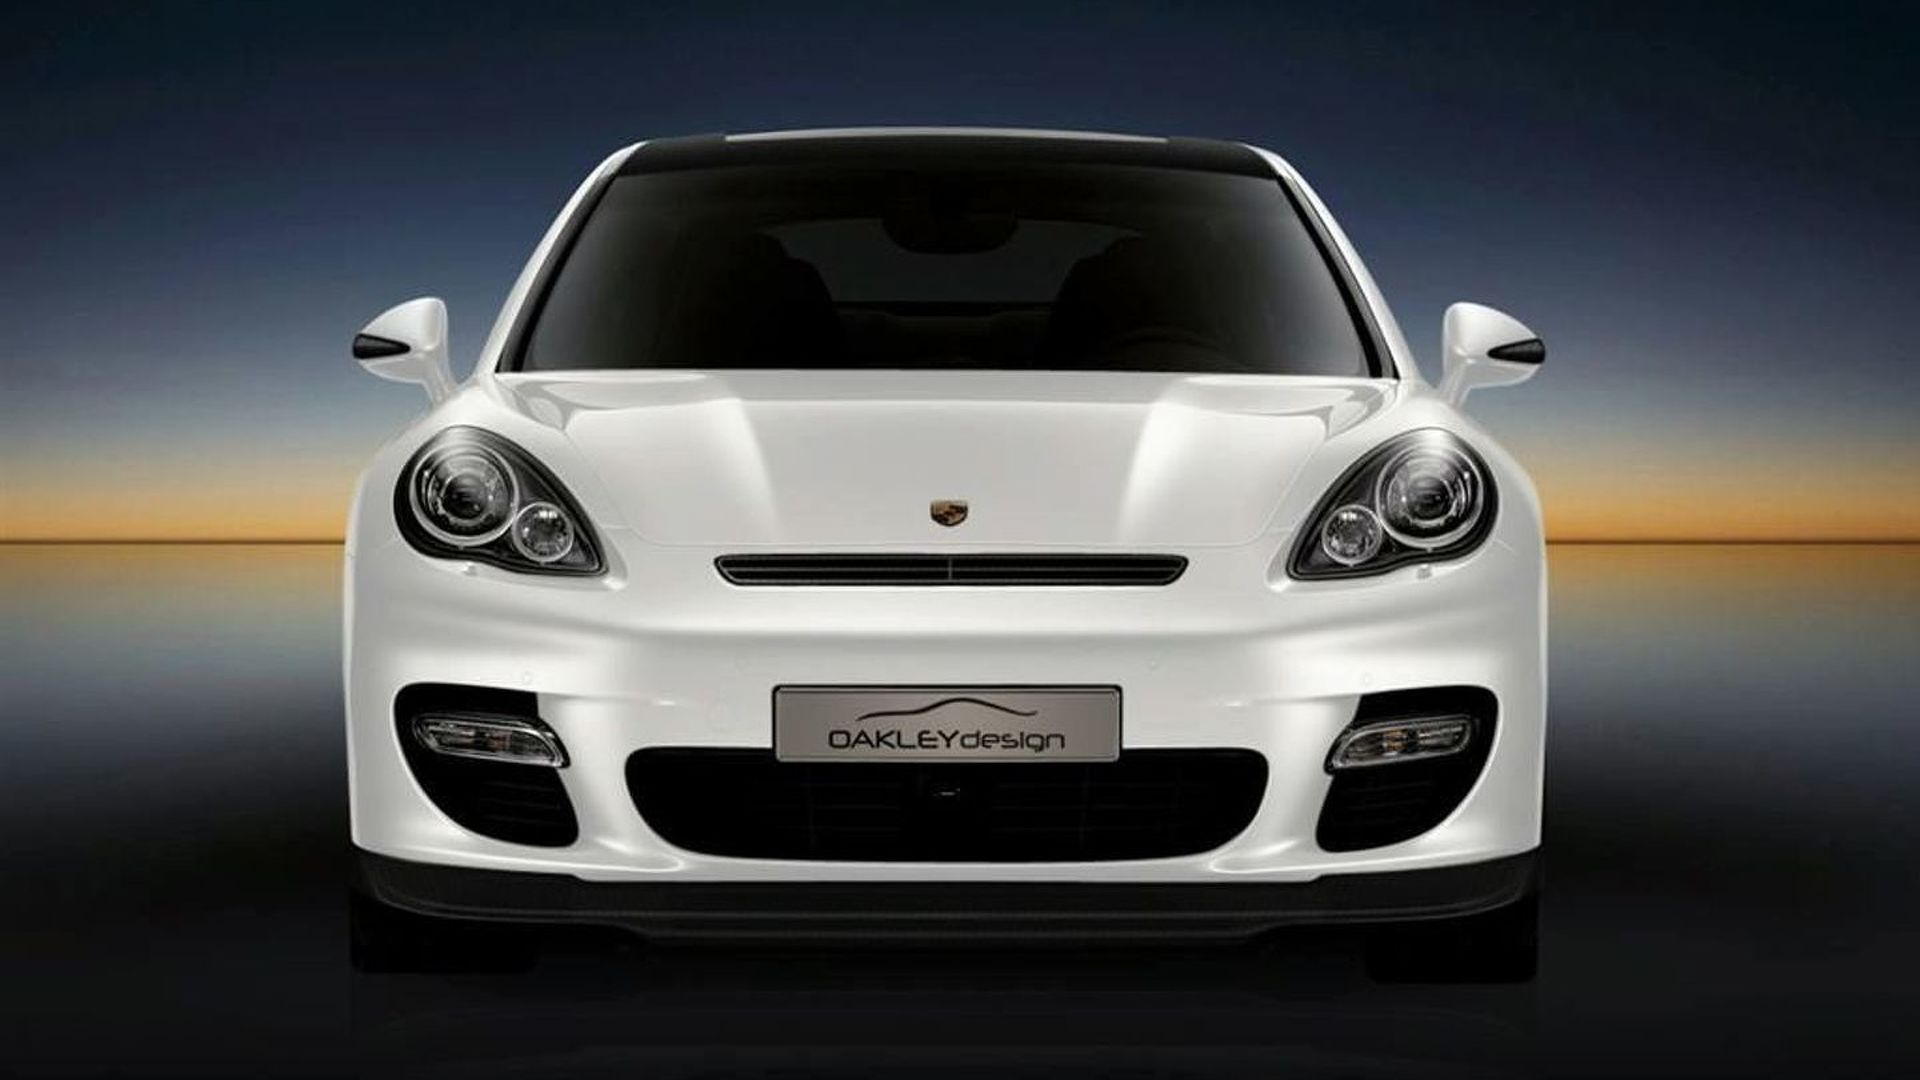 Oakley Design Shows their Panamera offering